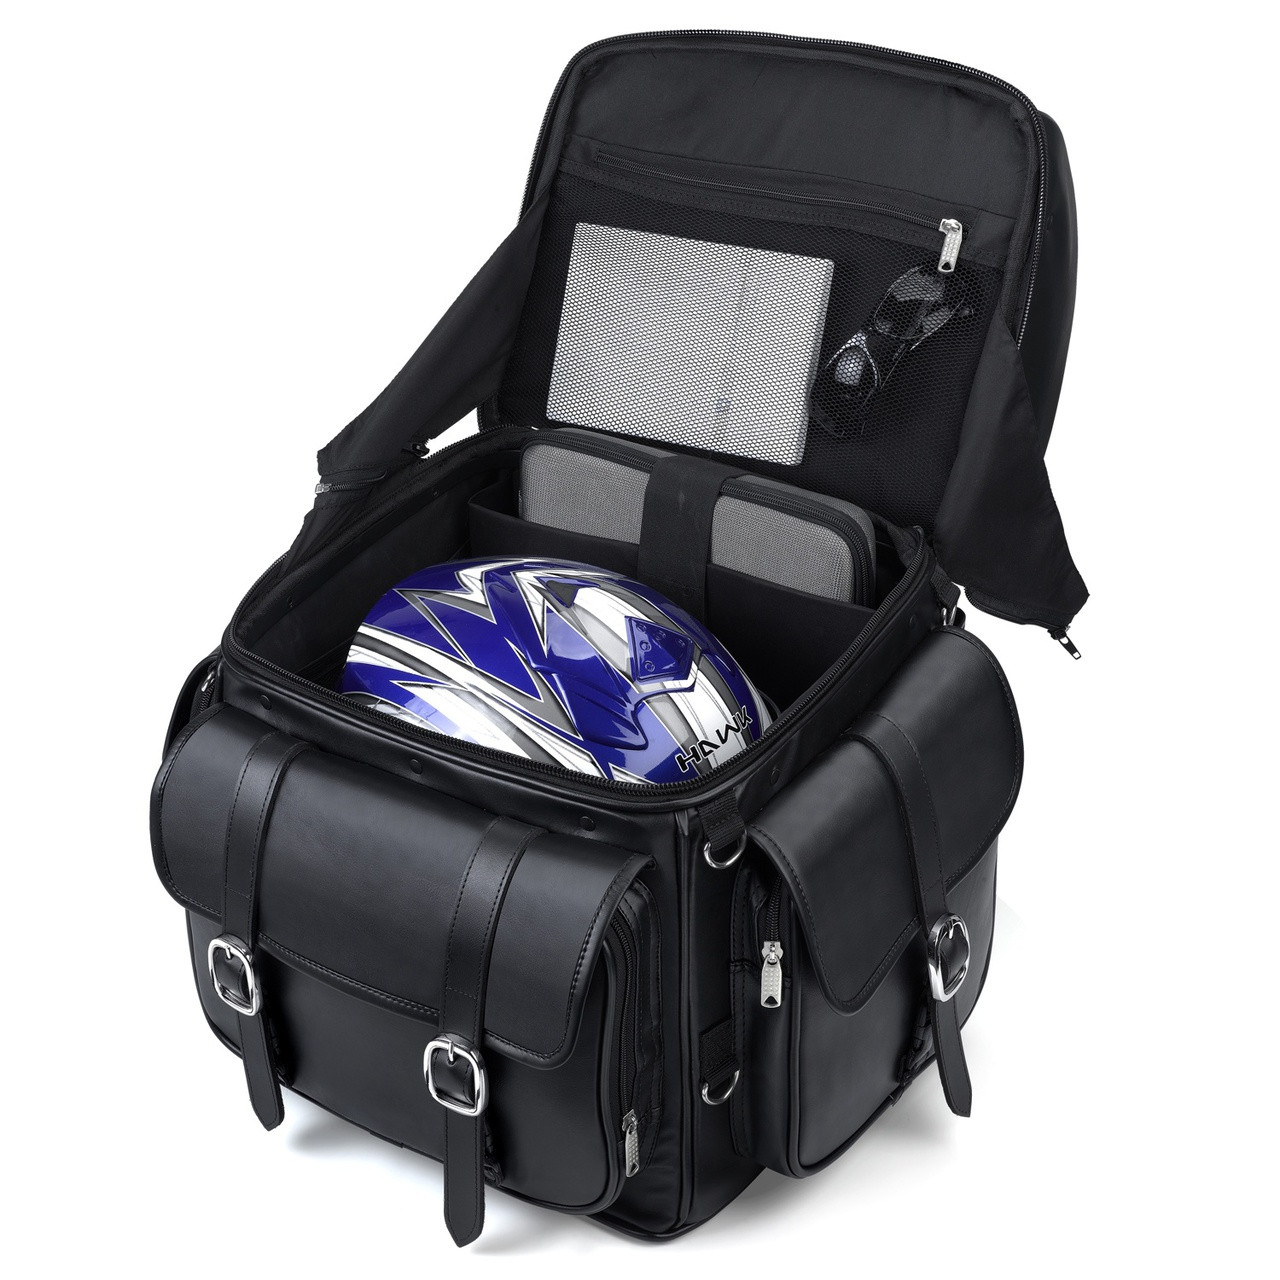 Leather Studded Motorcycle Backrest Seat Luggage Inner View with carrying Items